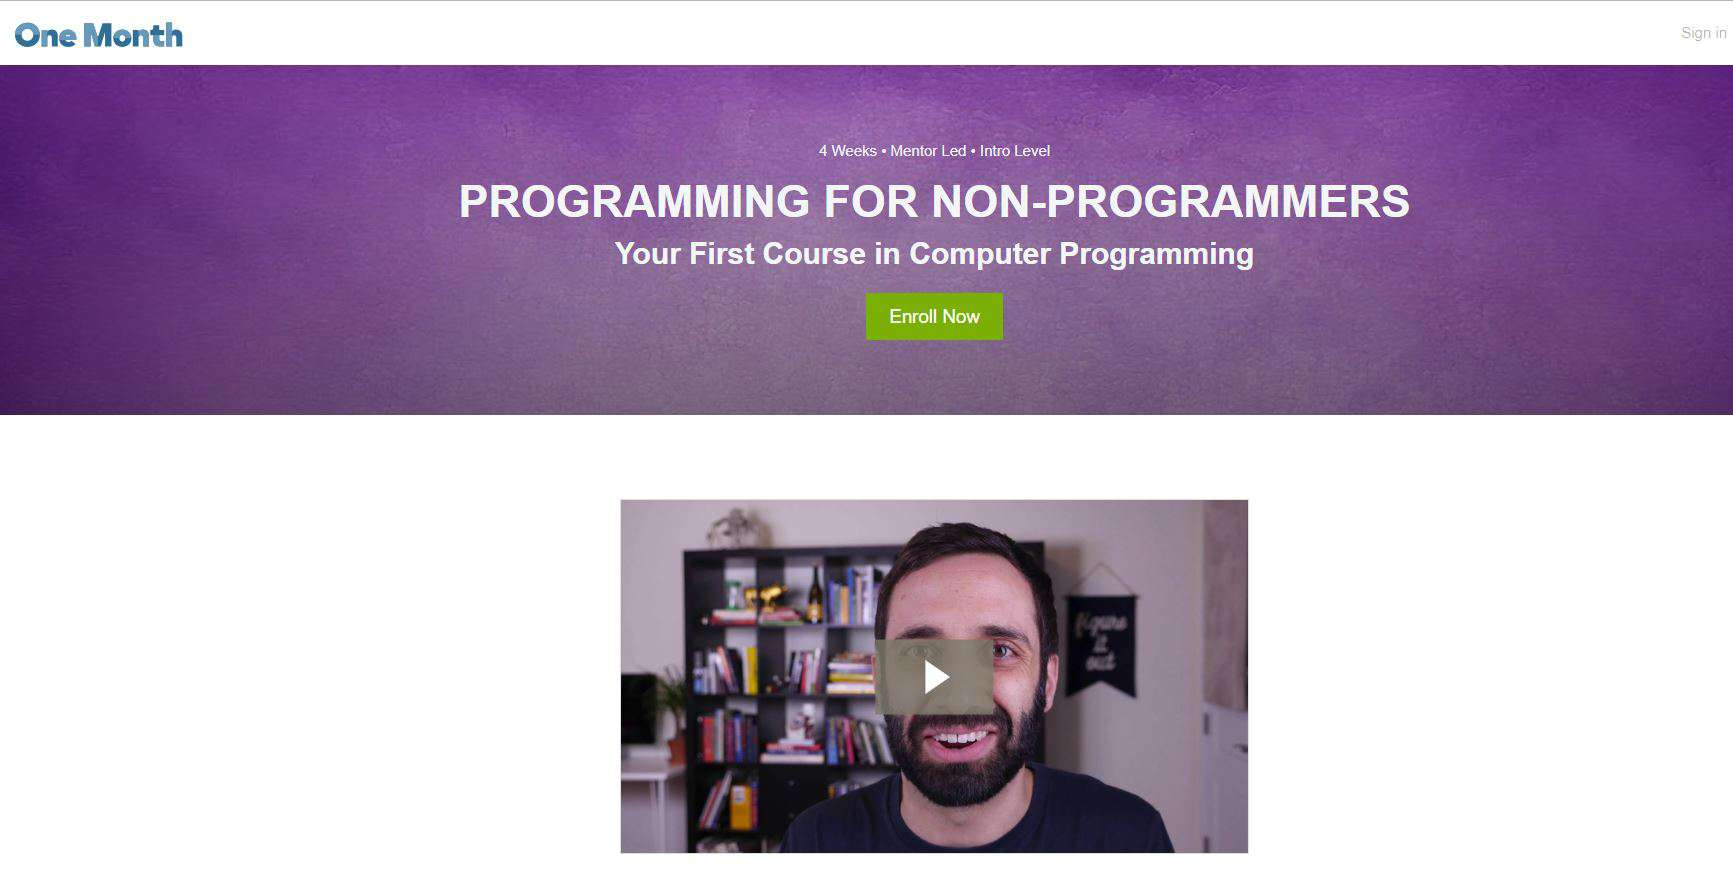 Learn Computer Programming with One Month